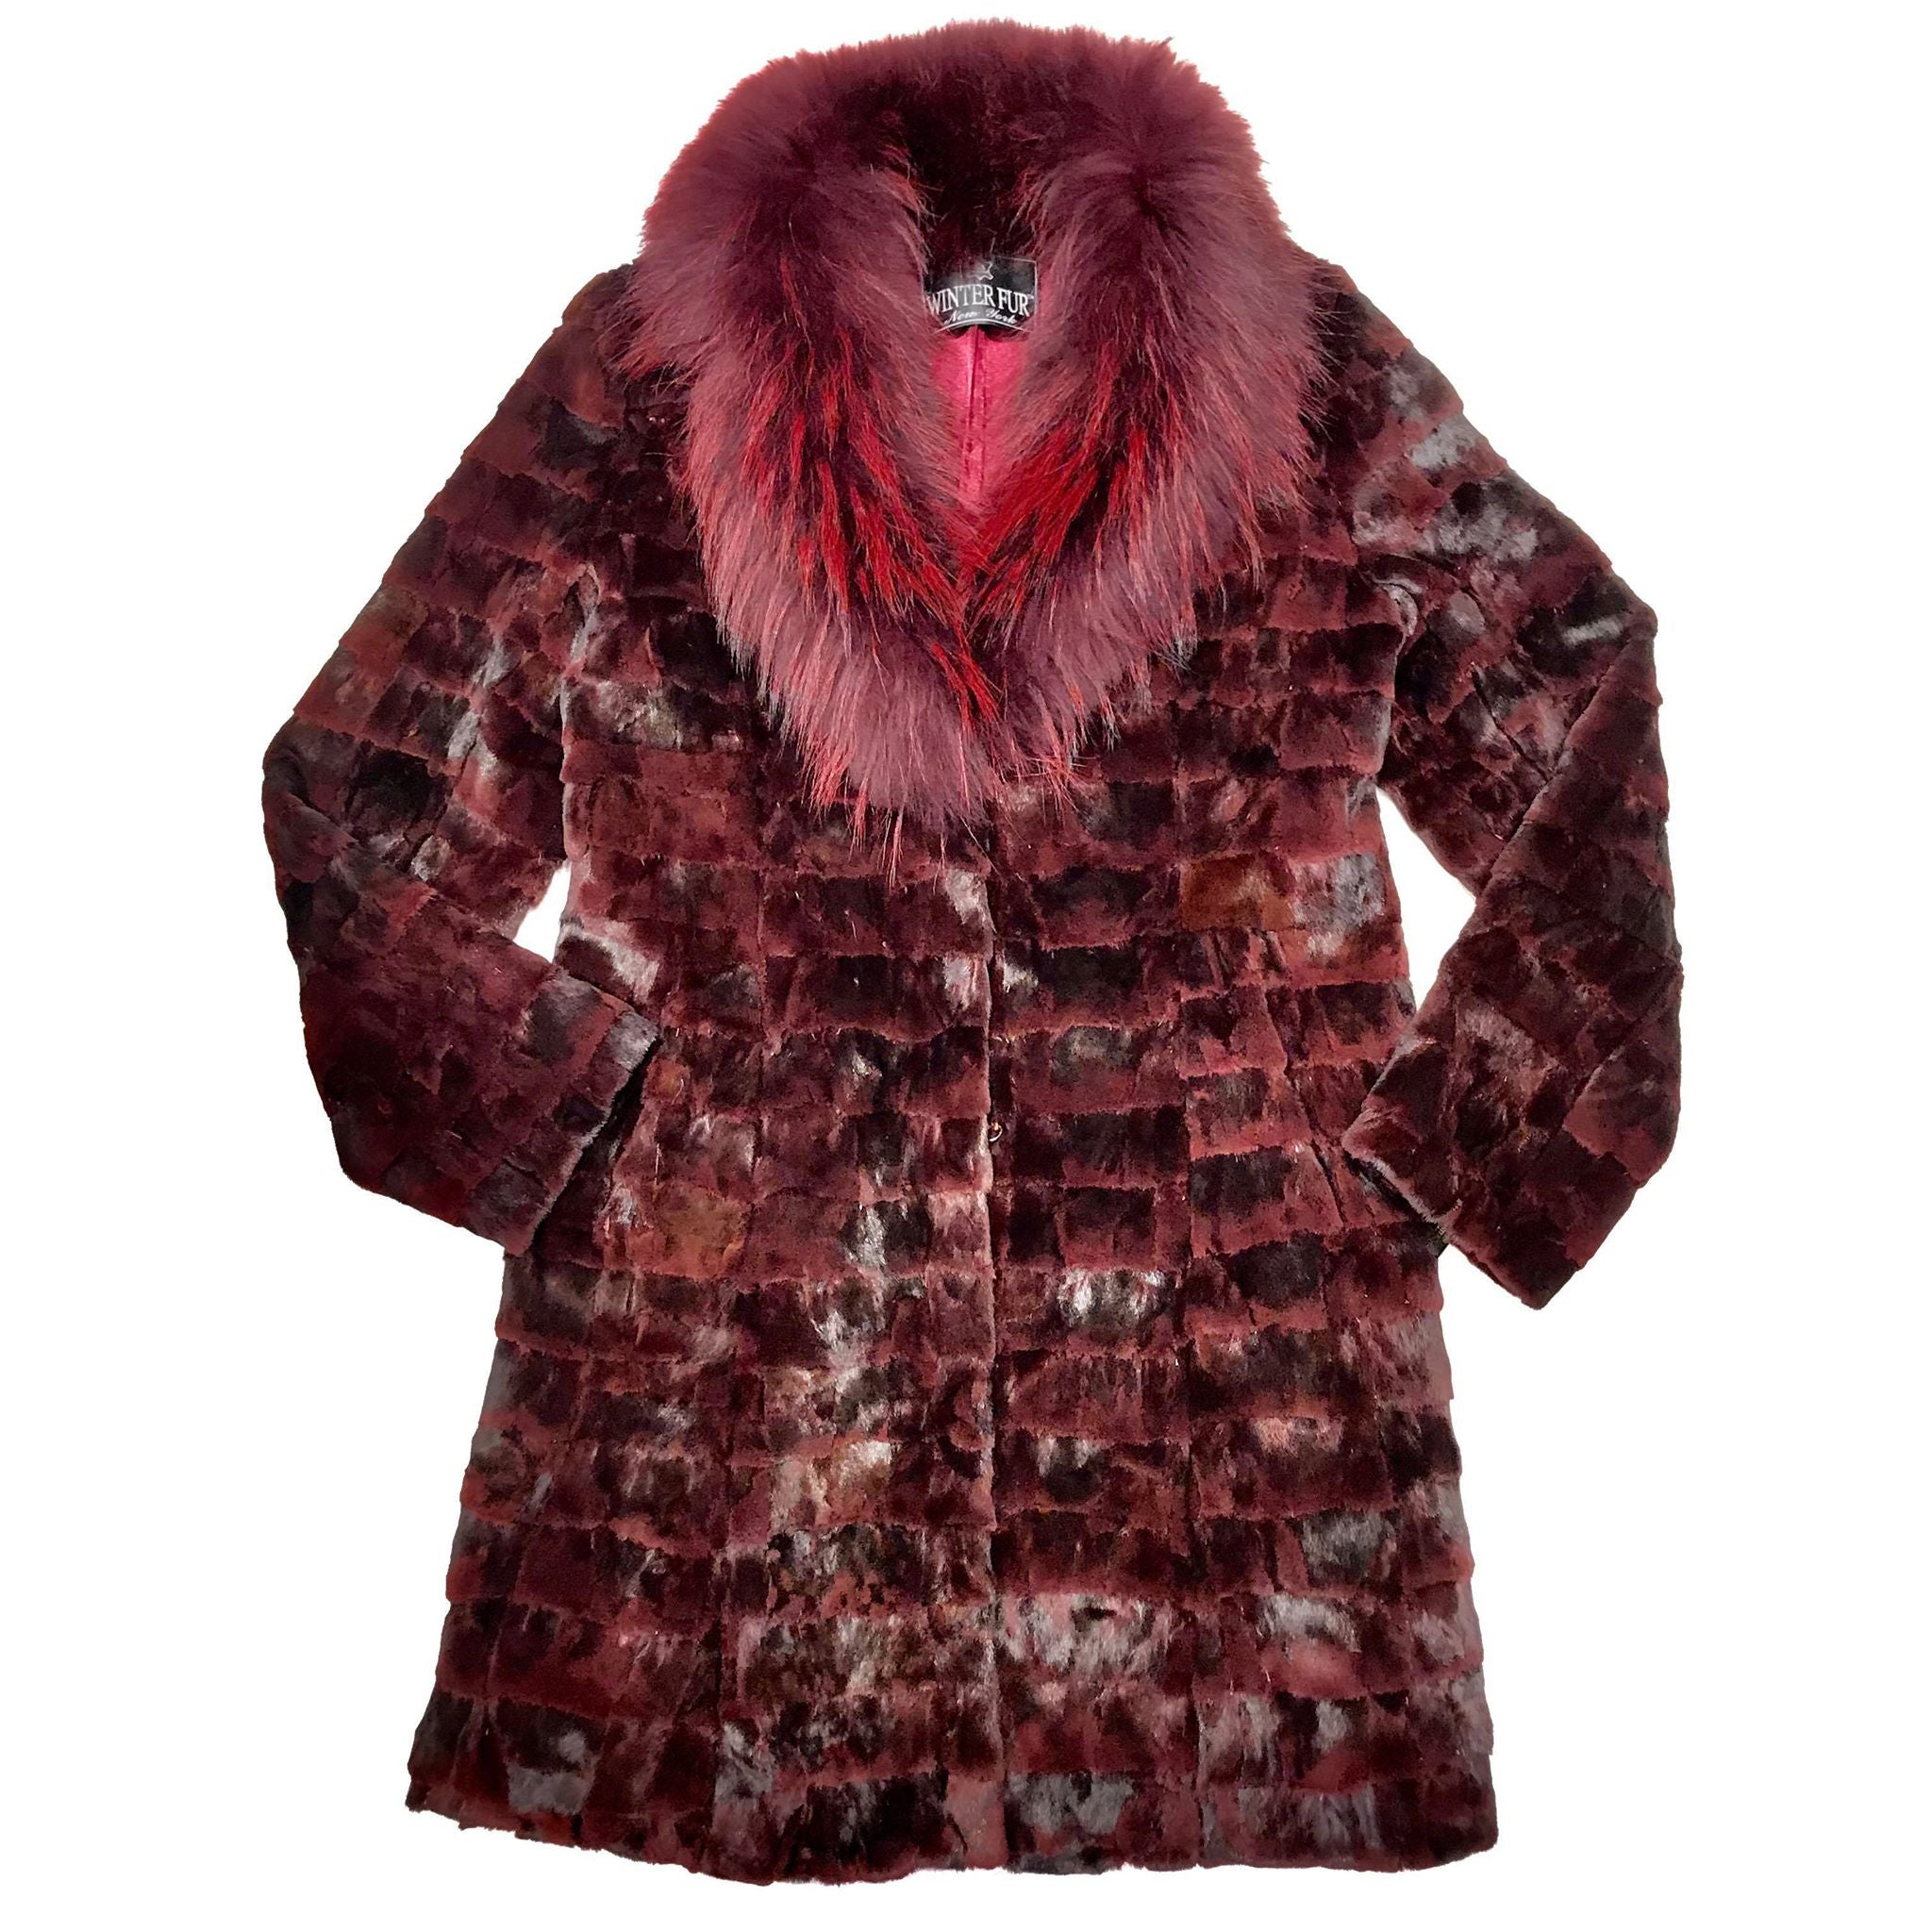 Winter Fur Women s Wine Red Full 3 4 Mink Fur Coat – Dudes Boutique 75612b5af